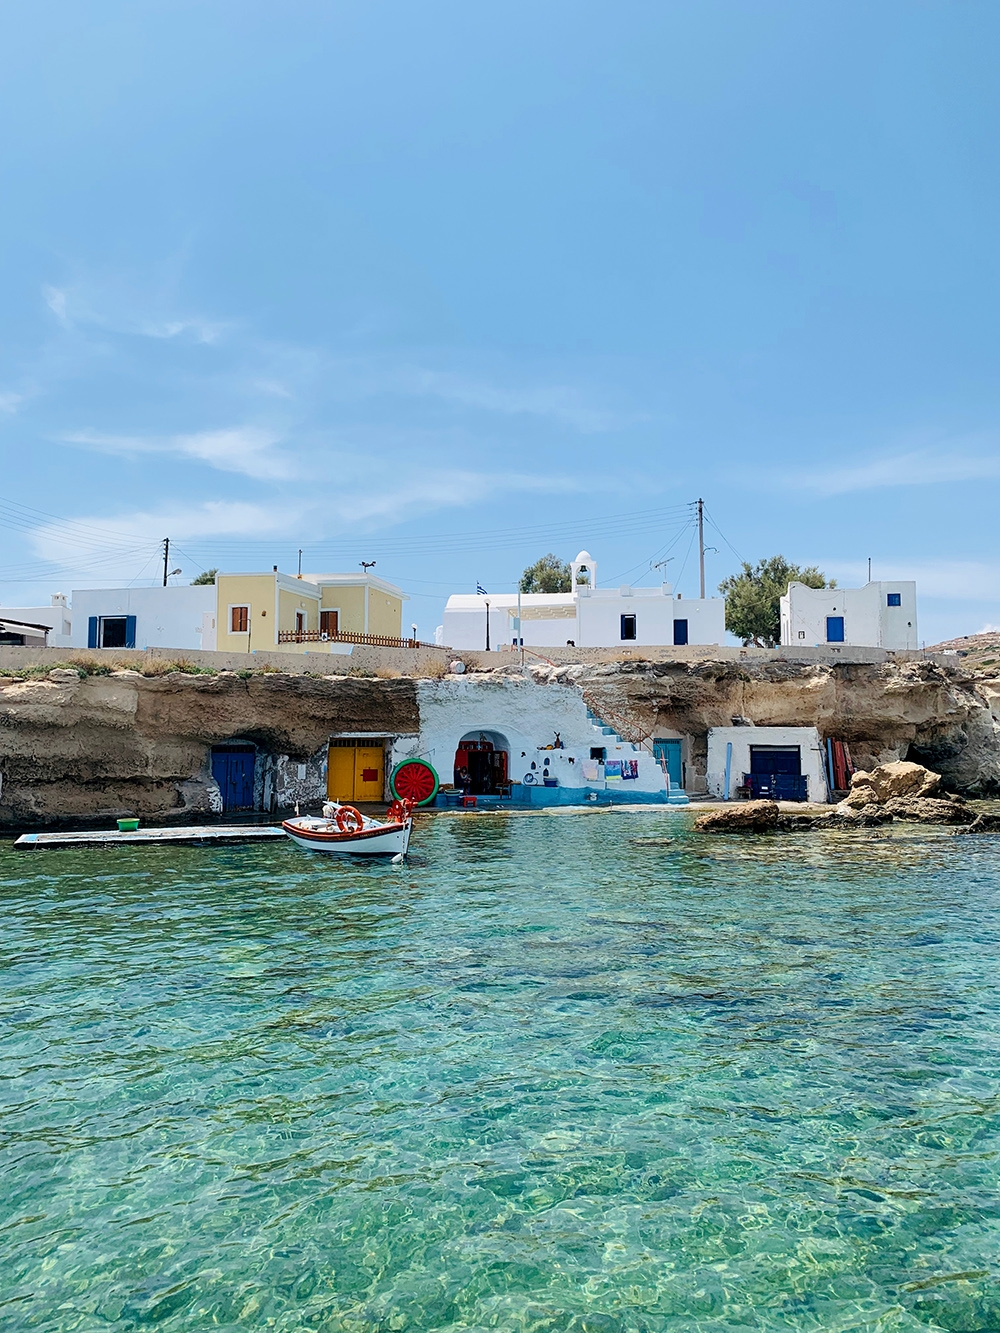 Coulourful houses built into the rocks of the coastline overlook the gleaming turquoise waters.